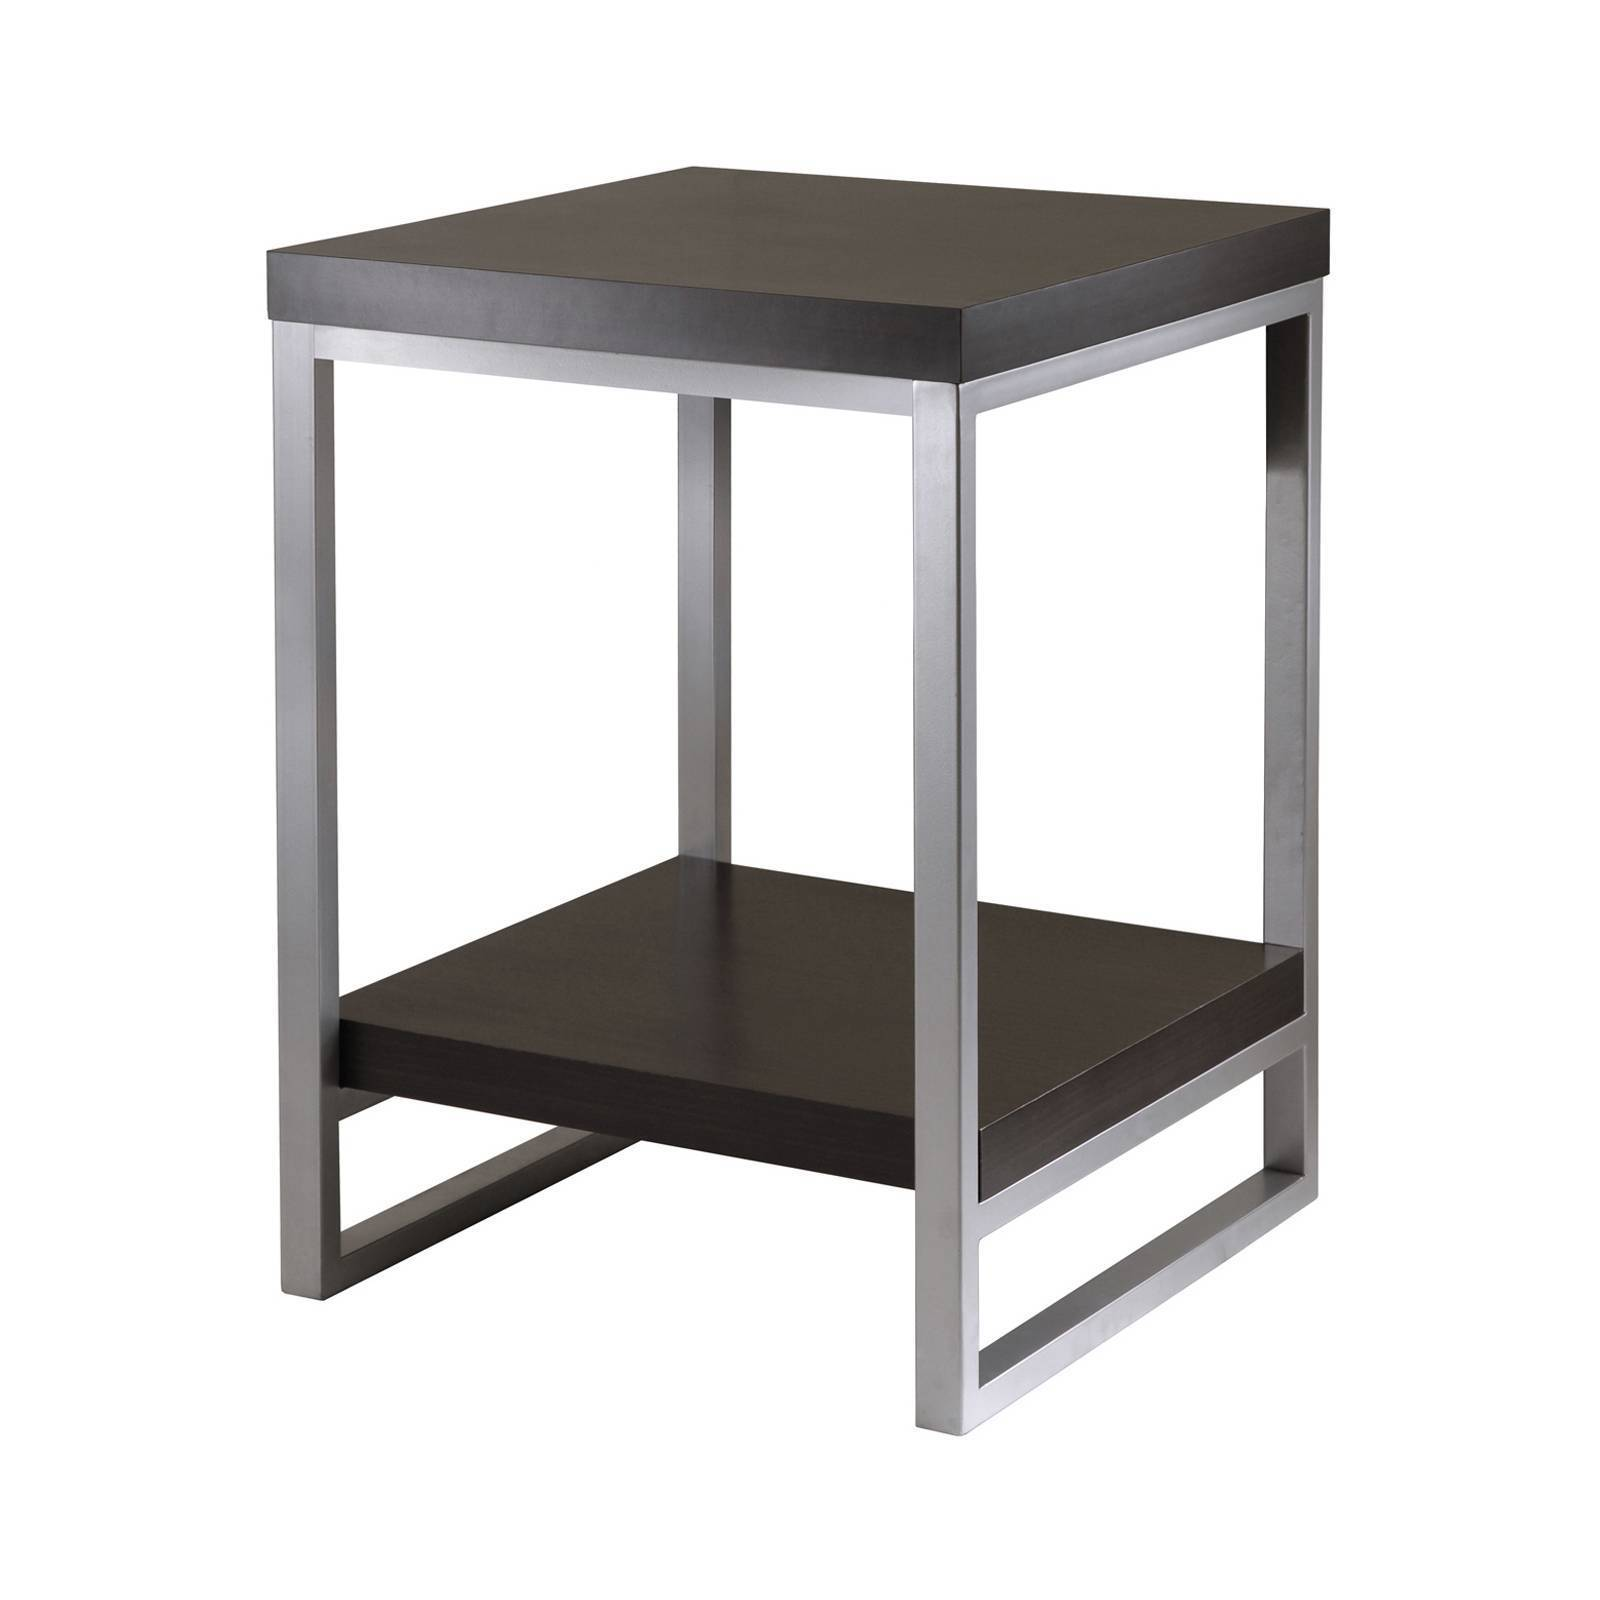 winsome jared enamel steel tube dark espresso finish end table wood with drawer and shelf black ture tall thin side blue bernhardt cocktail winter dog house plans red outdoor